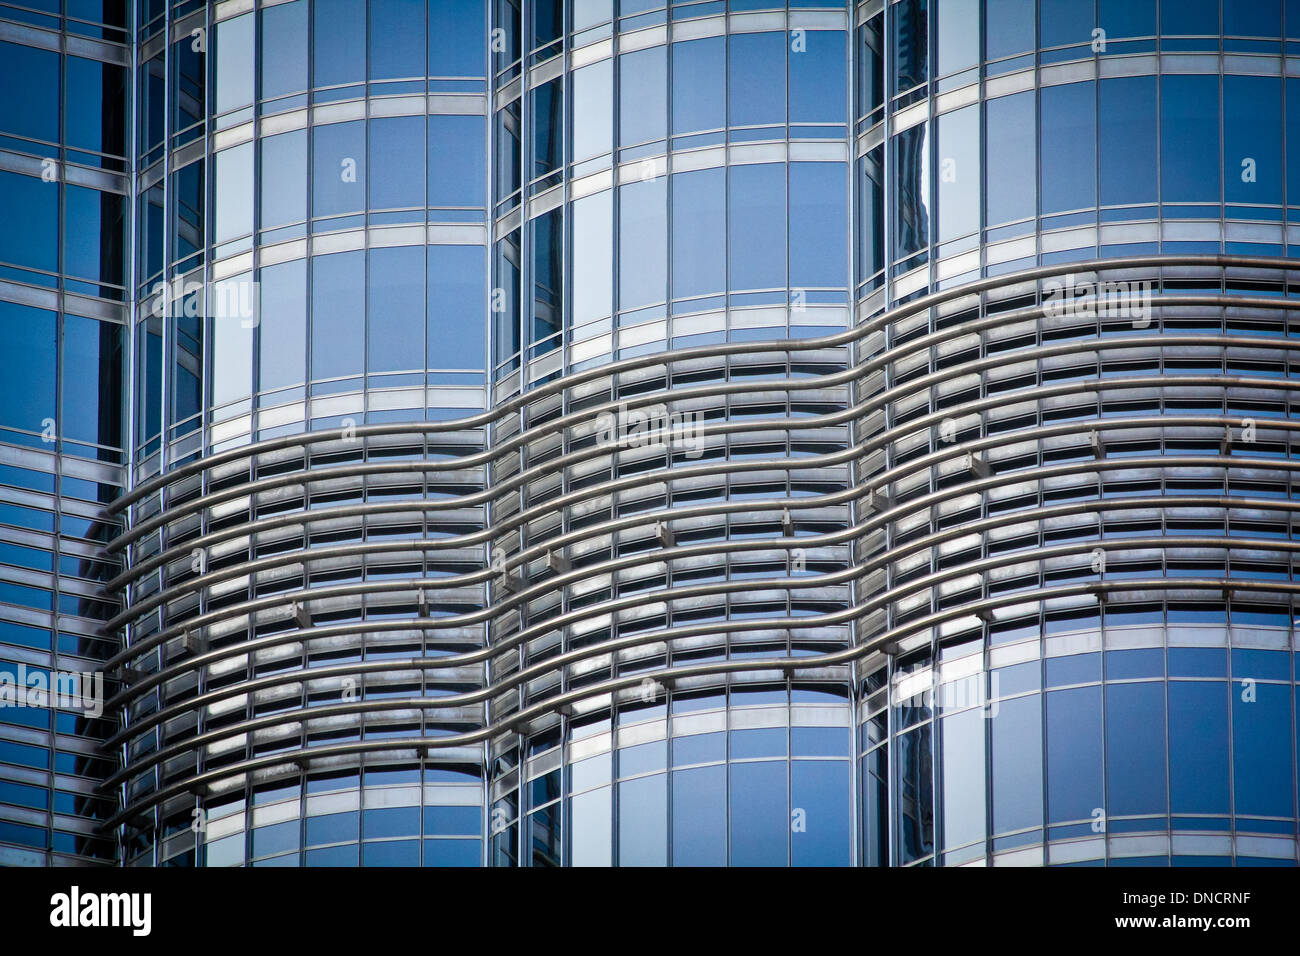 details of Burj Khalifa, highest Skyscraper in the World, 828 meter, 2625 feet, Burj Dubai, Dubai United Arab Emirates. - Stock Image